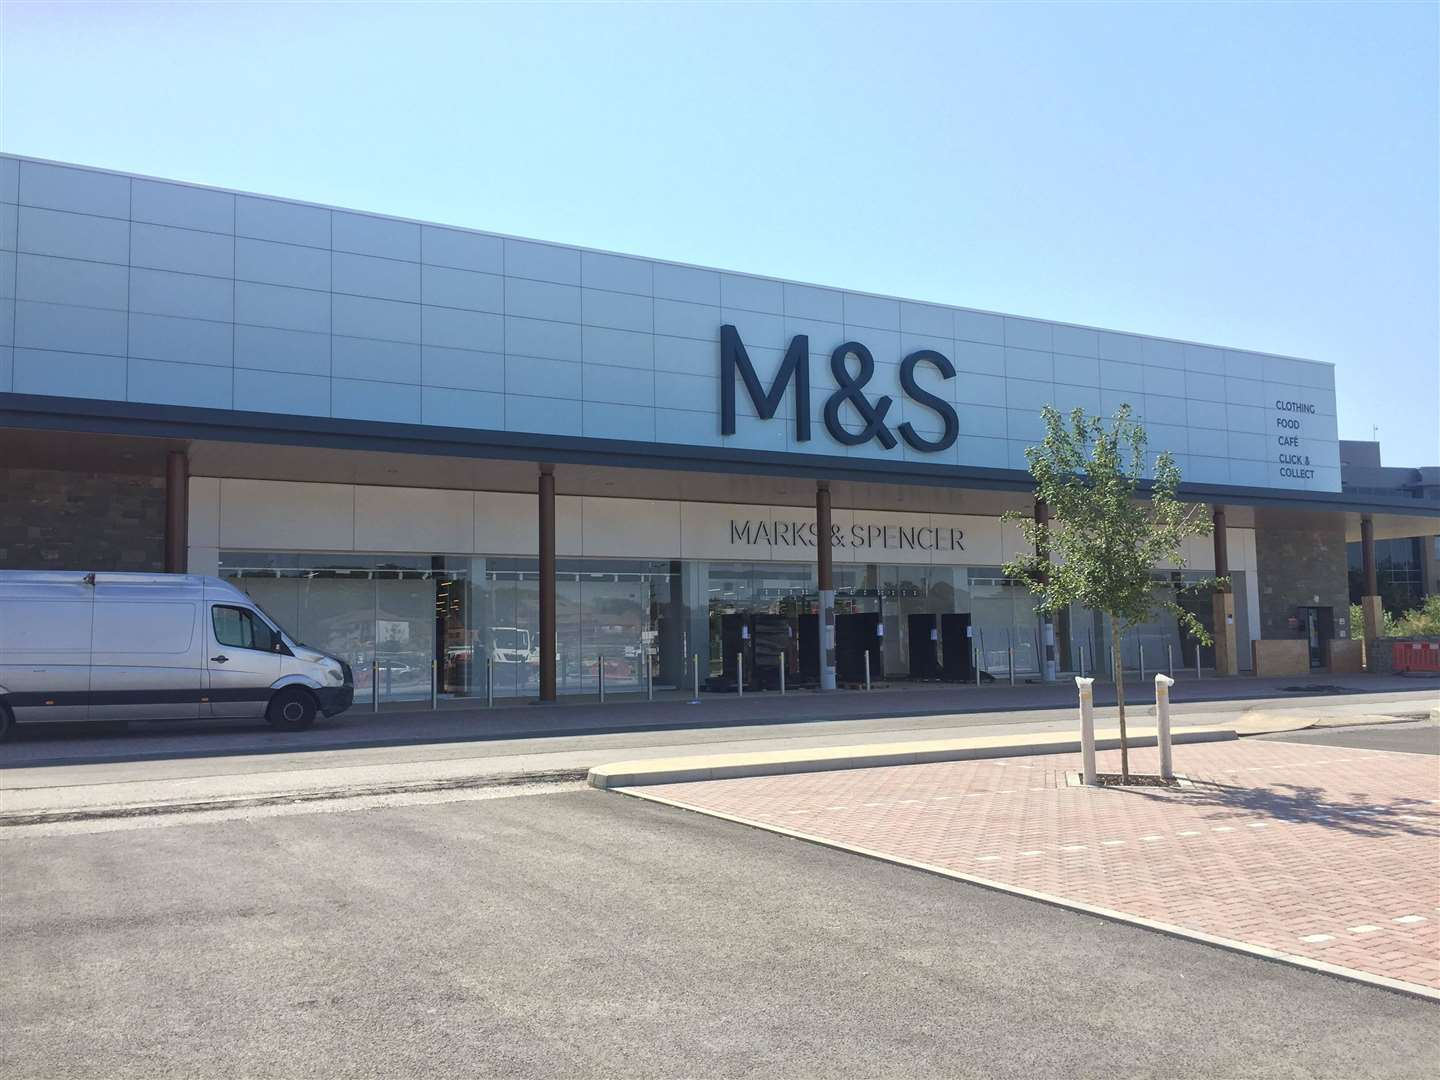 M&S in the Eclipse Retail Park will open next month